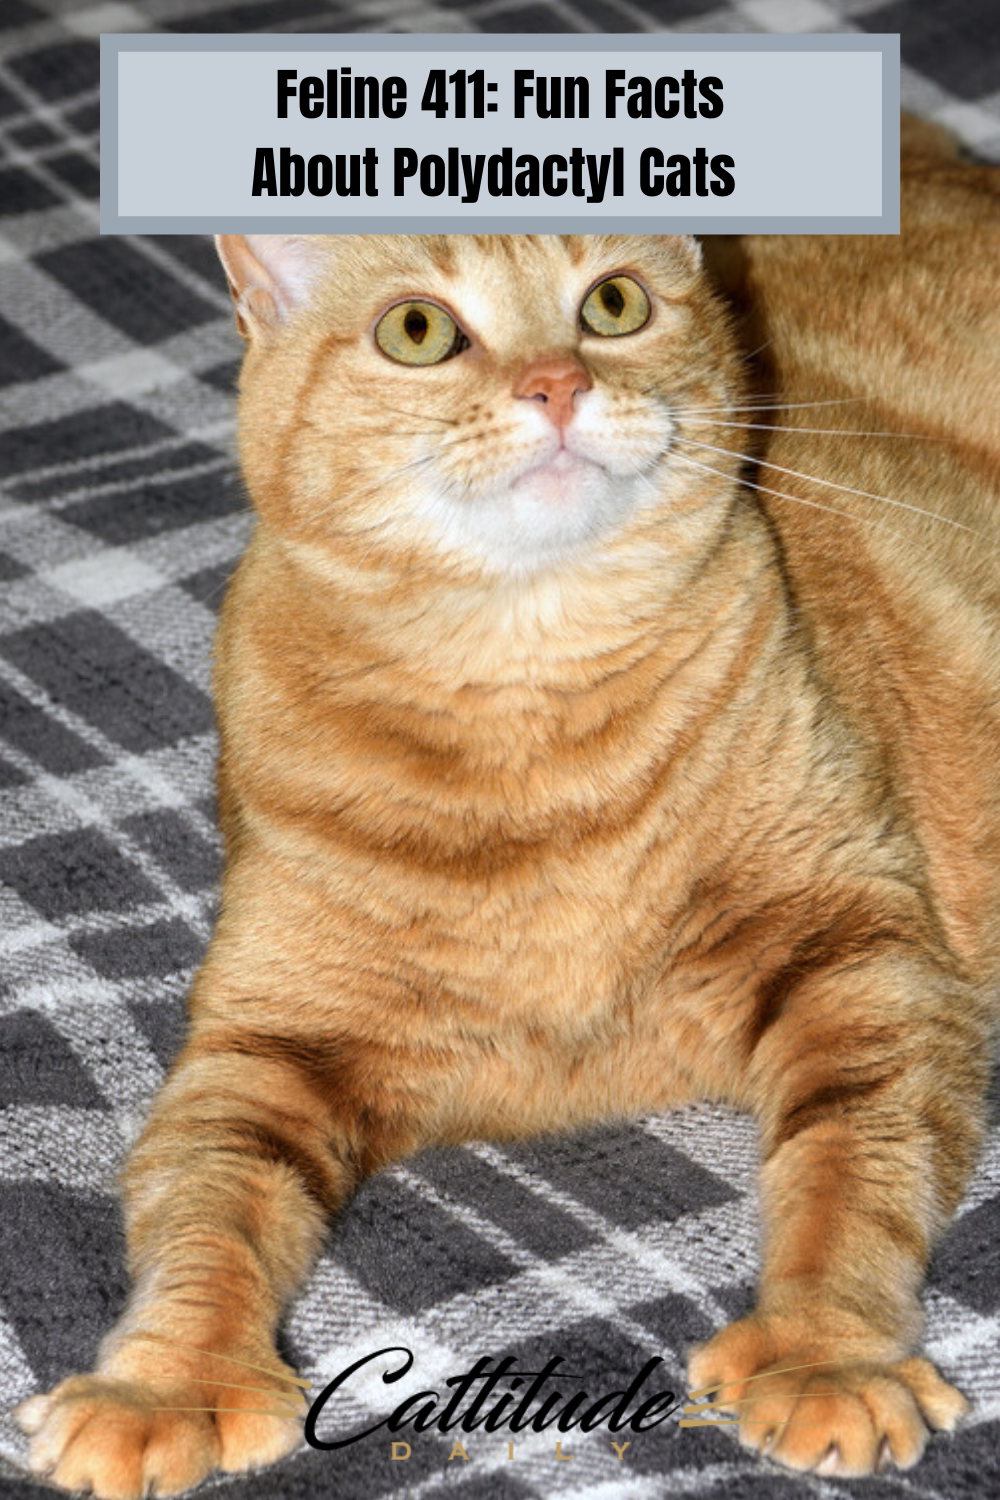 Are you a lover of polydactyl cats? Learn more about them